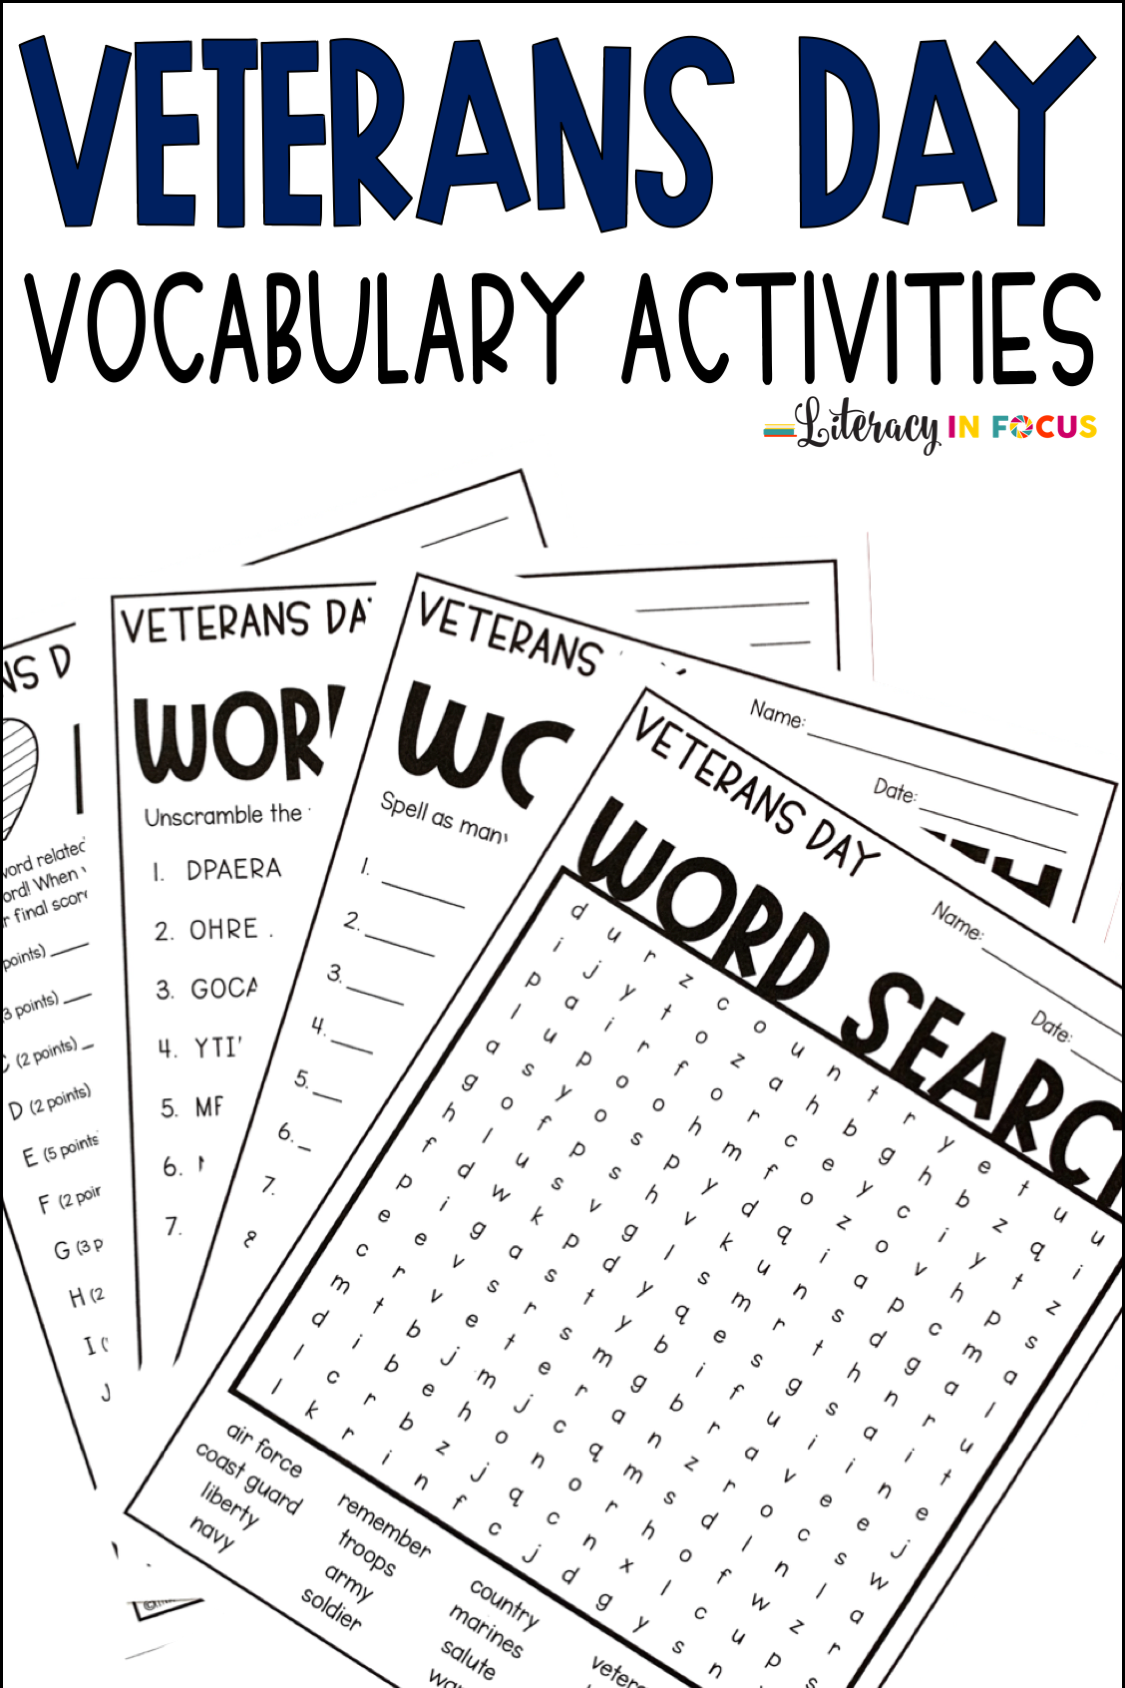 Celebrate Veterans Day With Vocabulary Activities Four